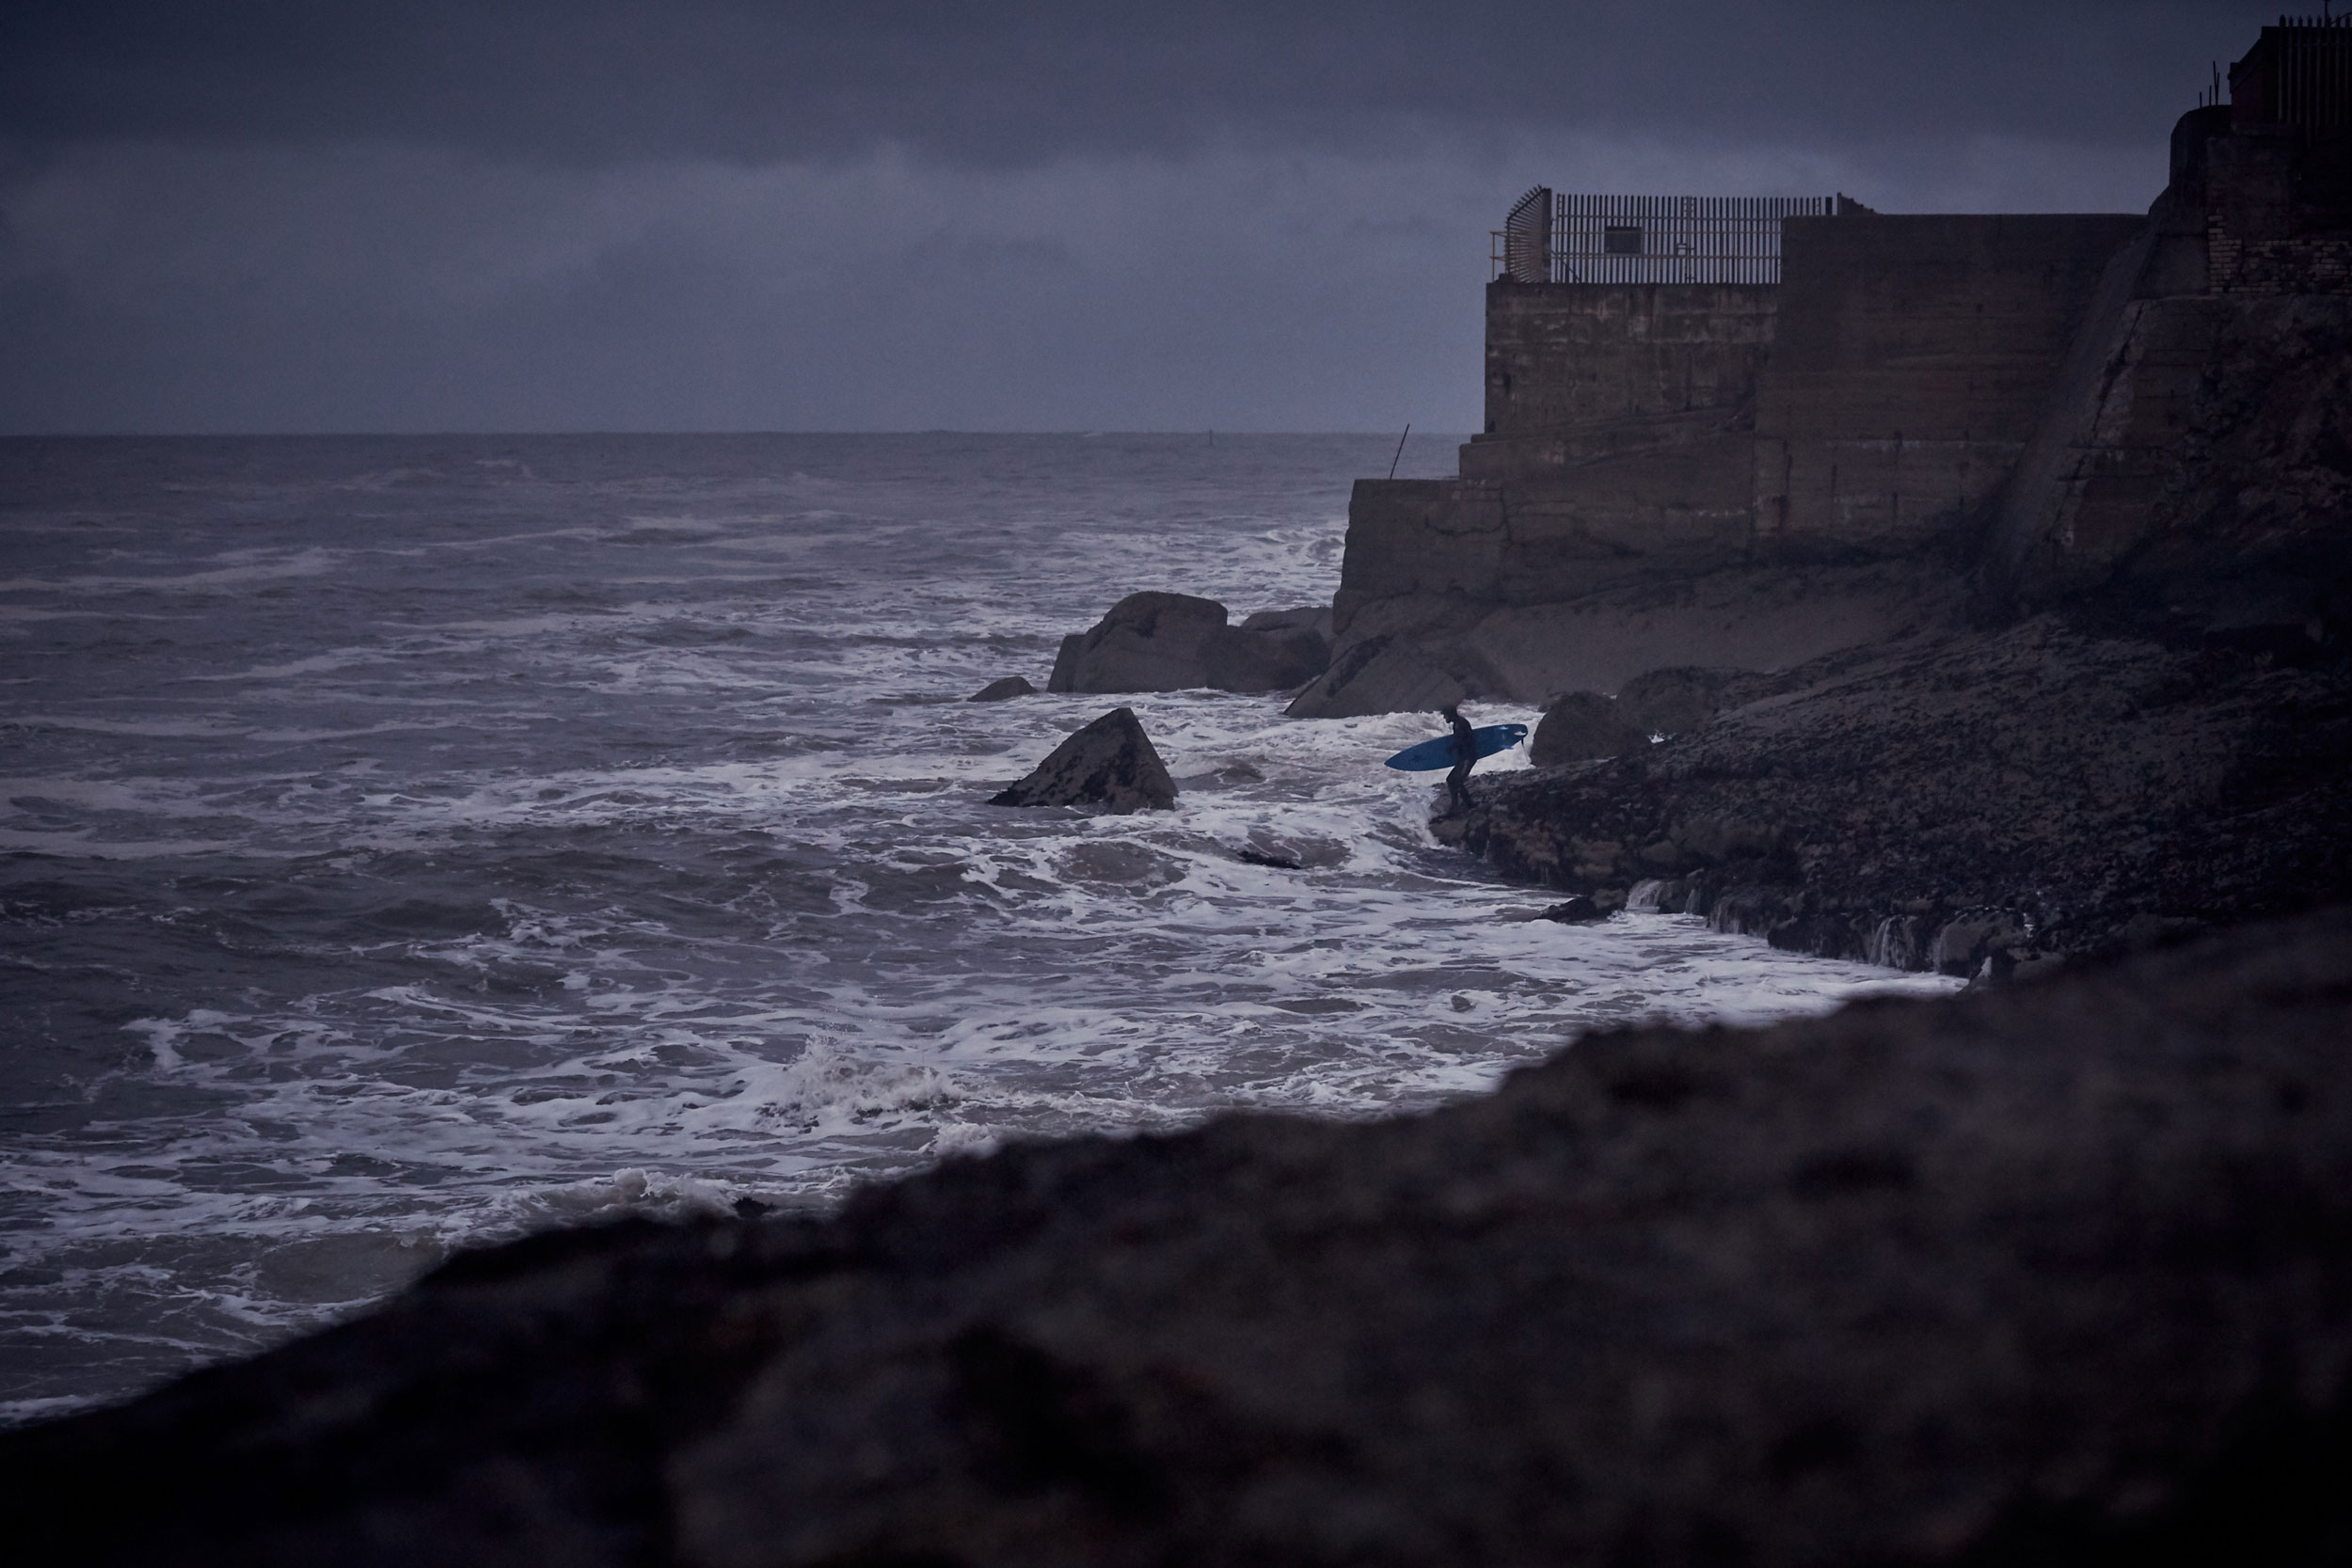 Surfer watches waves break against the rocks in front of him near Redcar